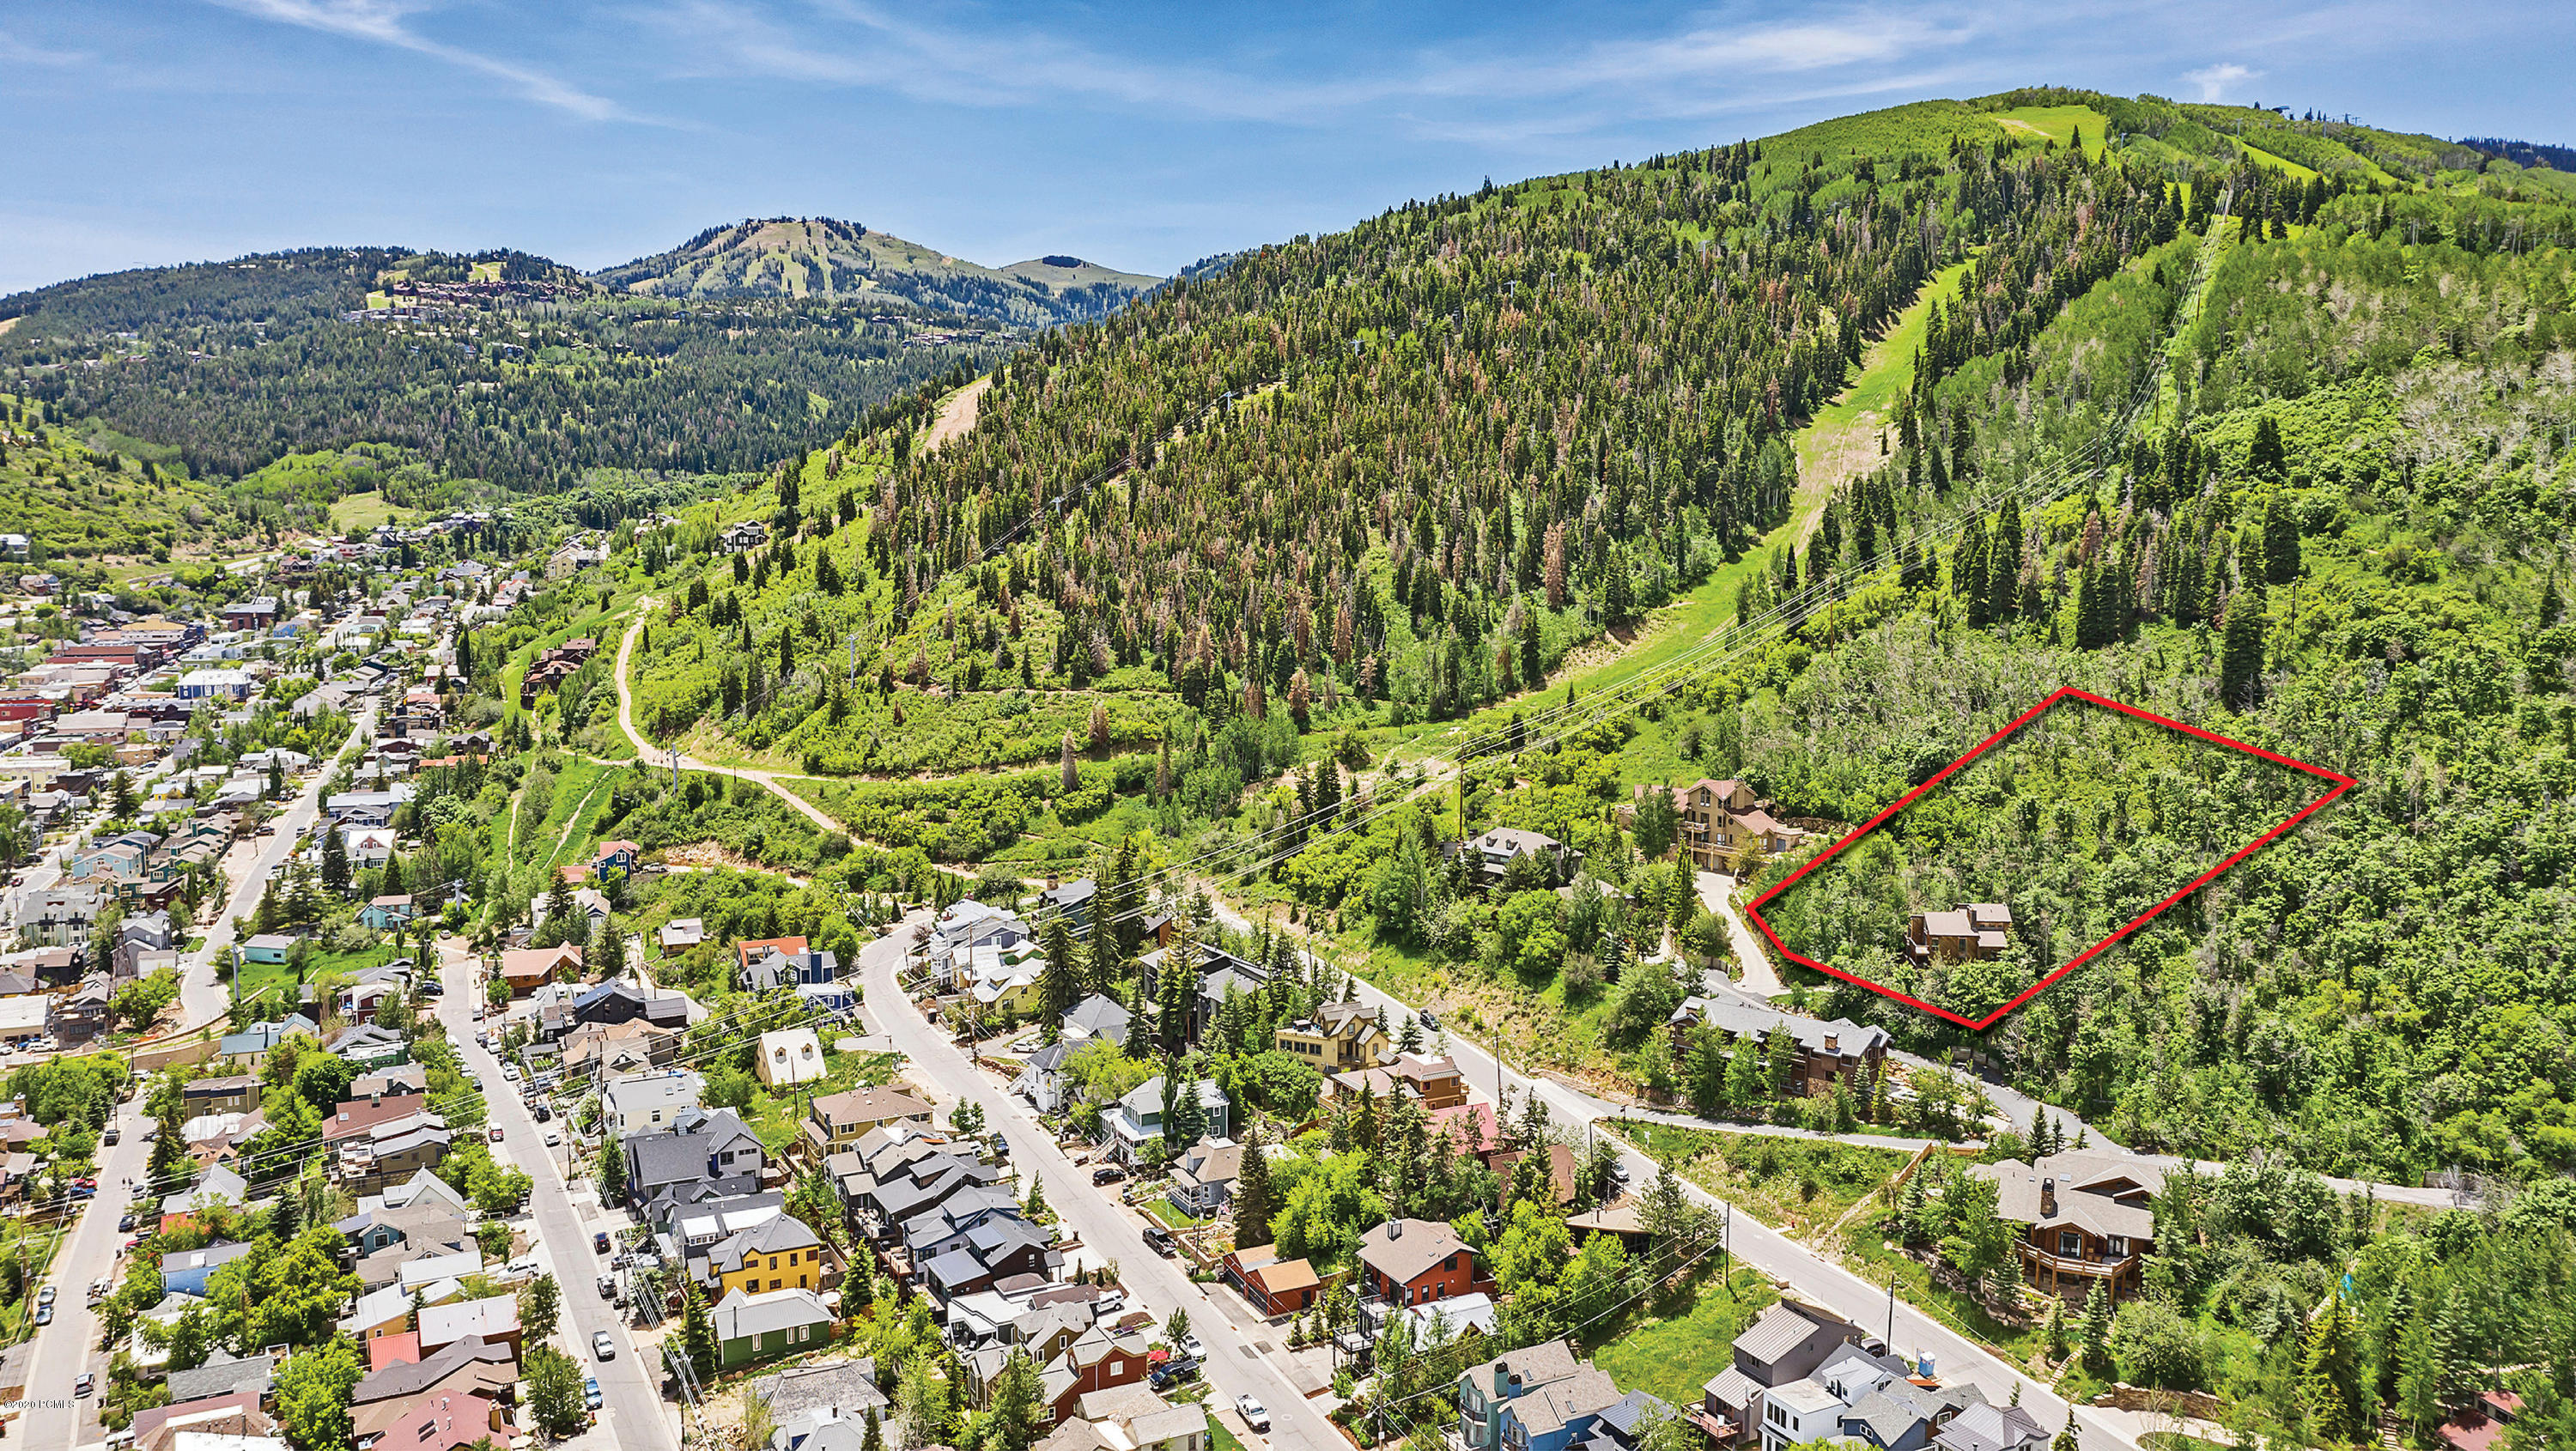 947 Northstar Drive, Park City, Utah 84060, ,Land,For Sale,Northstar,11803015